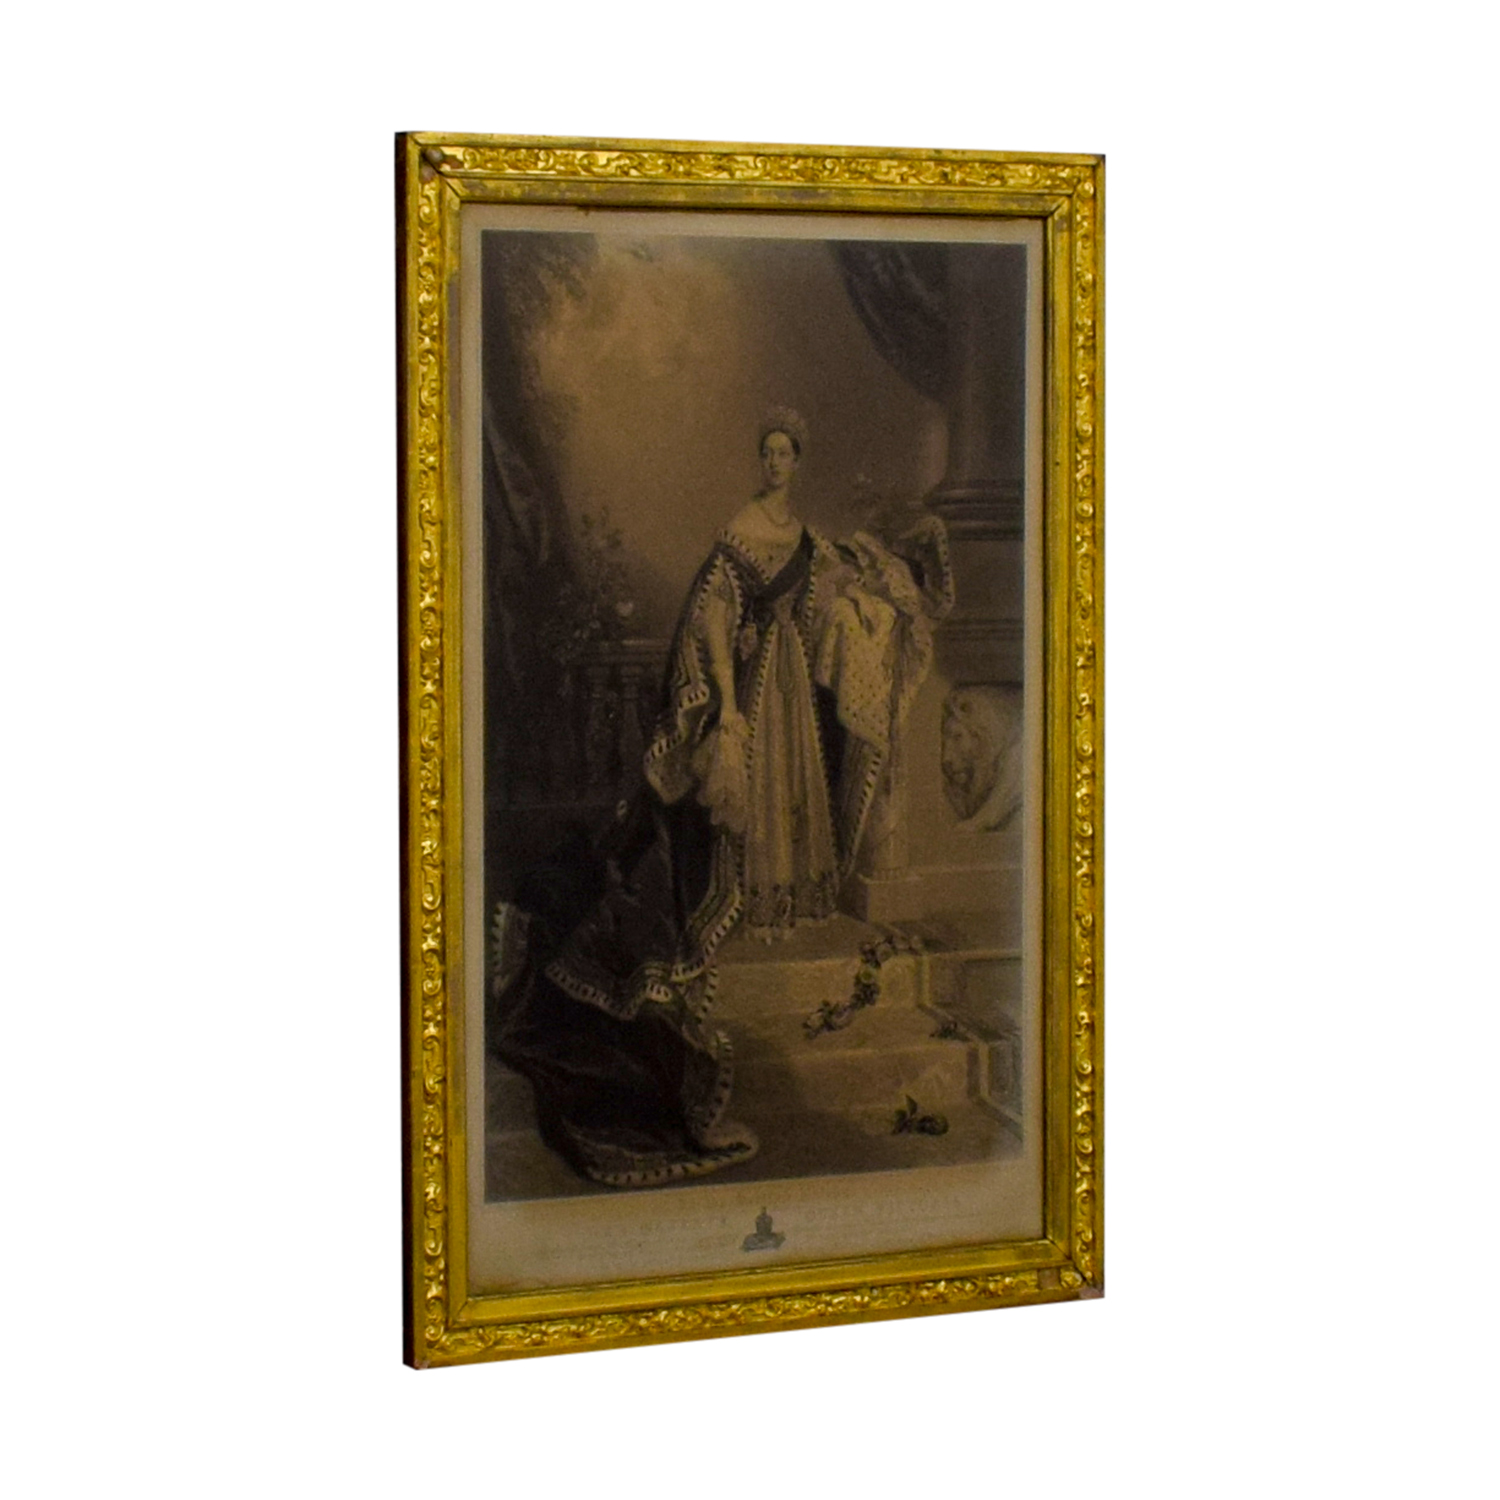 Queen Victoria of England Gold Framed Photograph / Decor